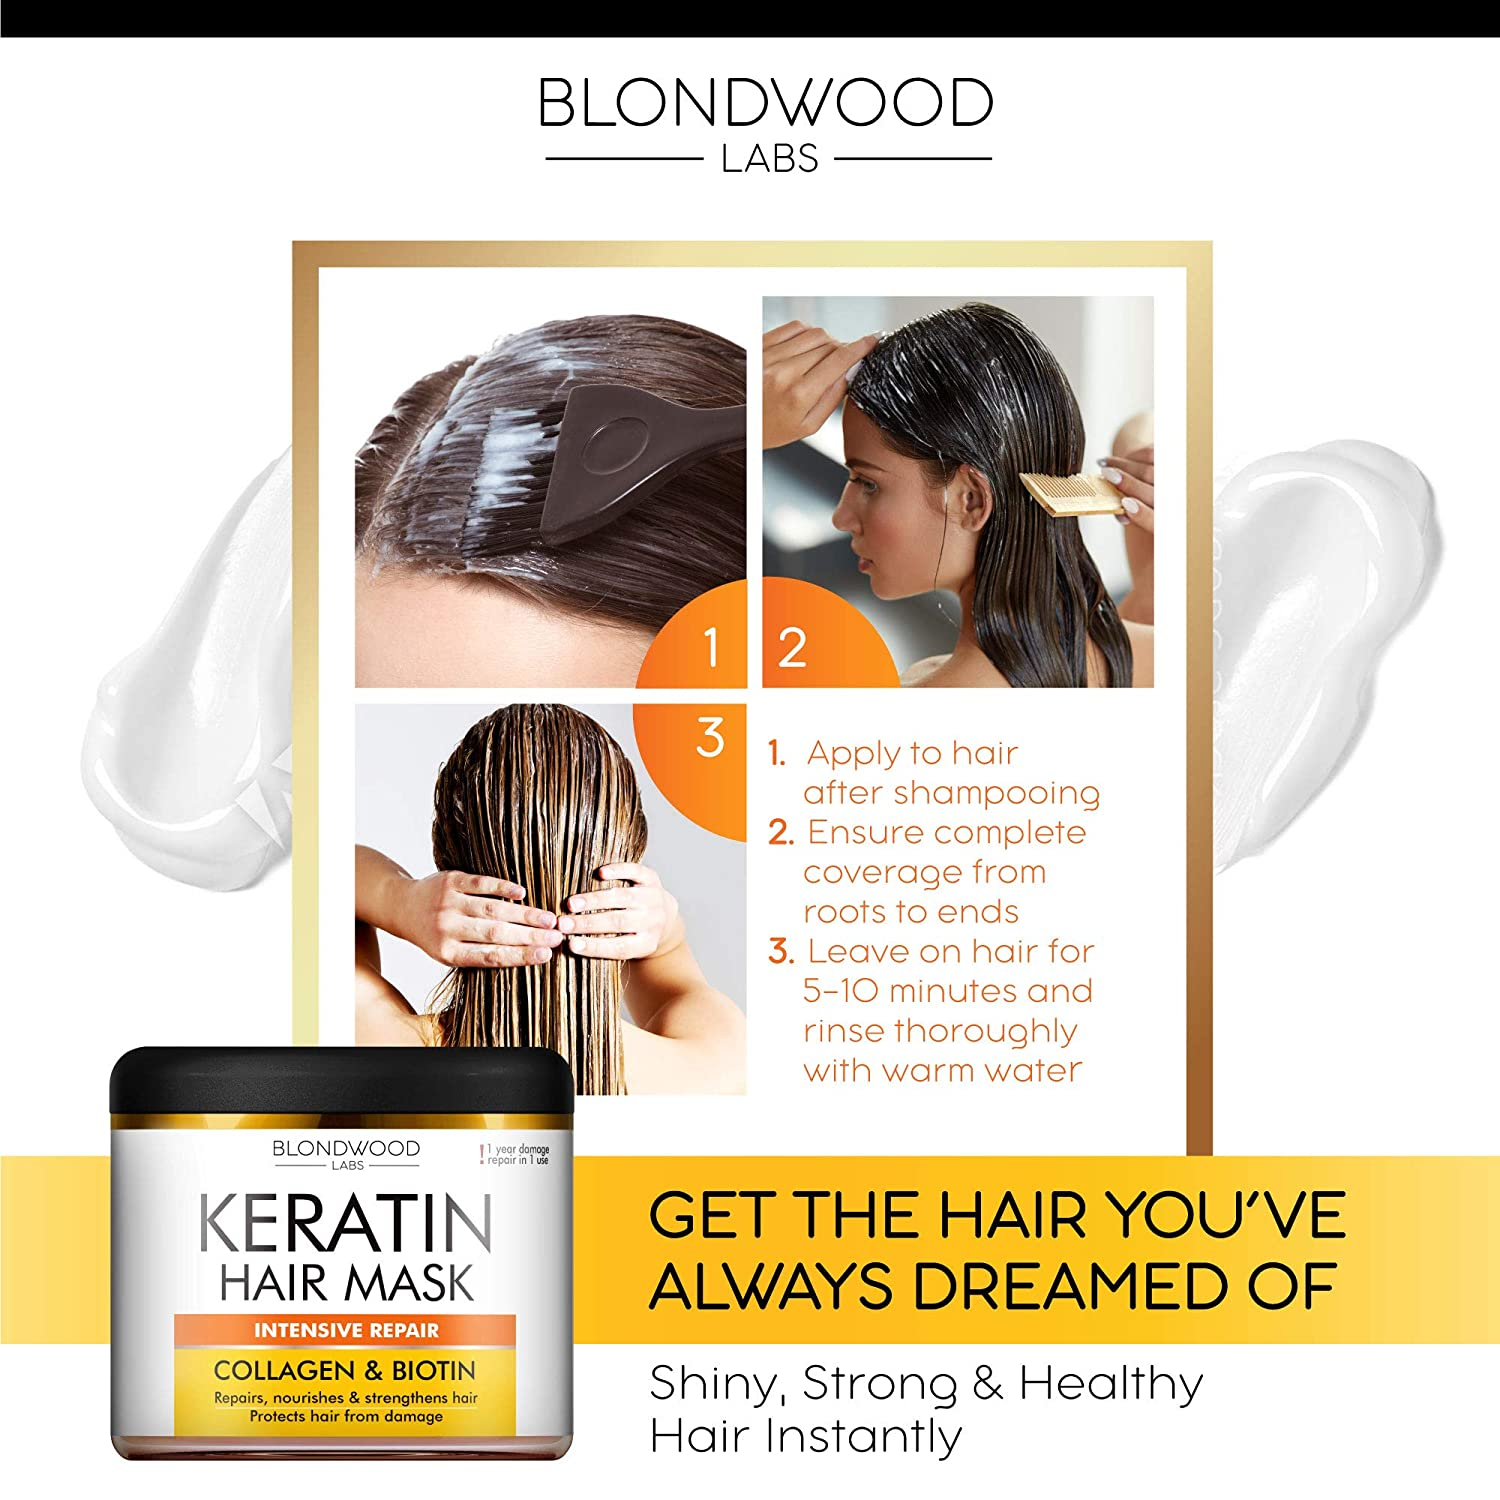 Keratin Hair Mask - Made in USA - Best Natural Biotin Keratin Collagen Treatment for Dry & Damaged Hair - Professional Collagen Hair Vitamin Complex for Hair Repair, Nourishment & Beauty - 8 oz: Beauty